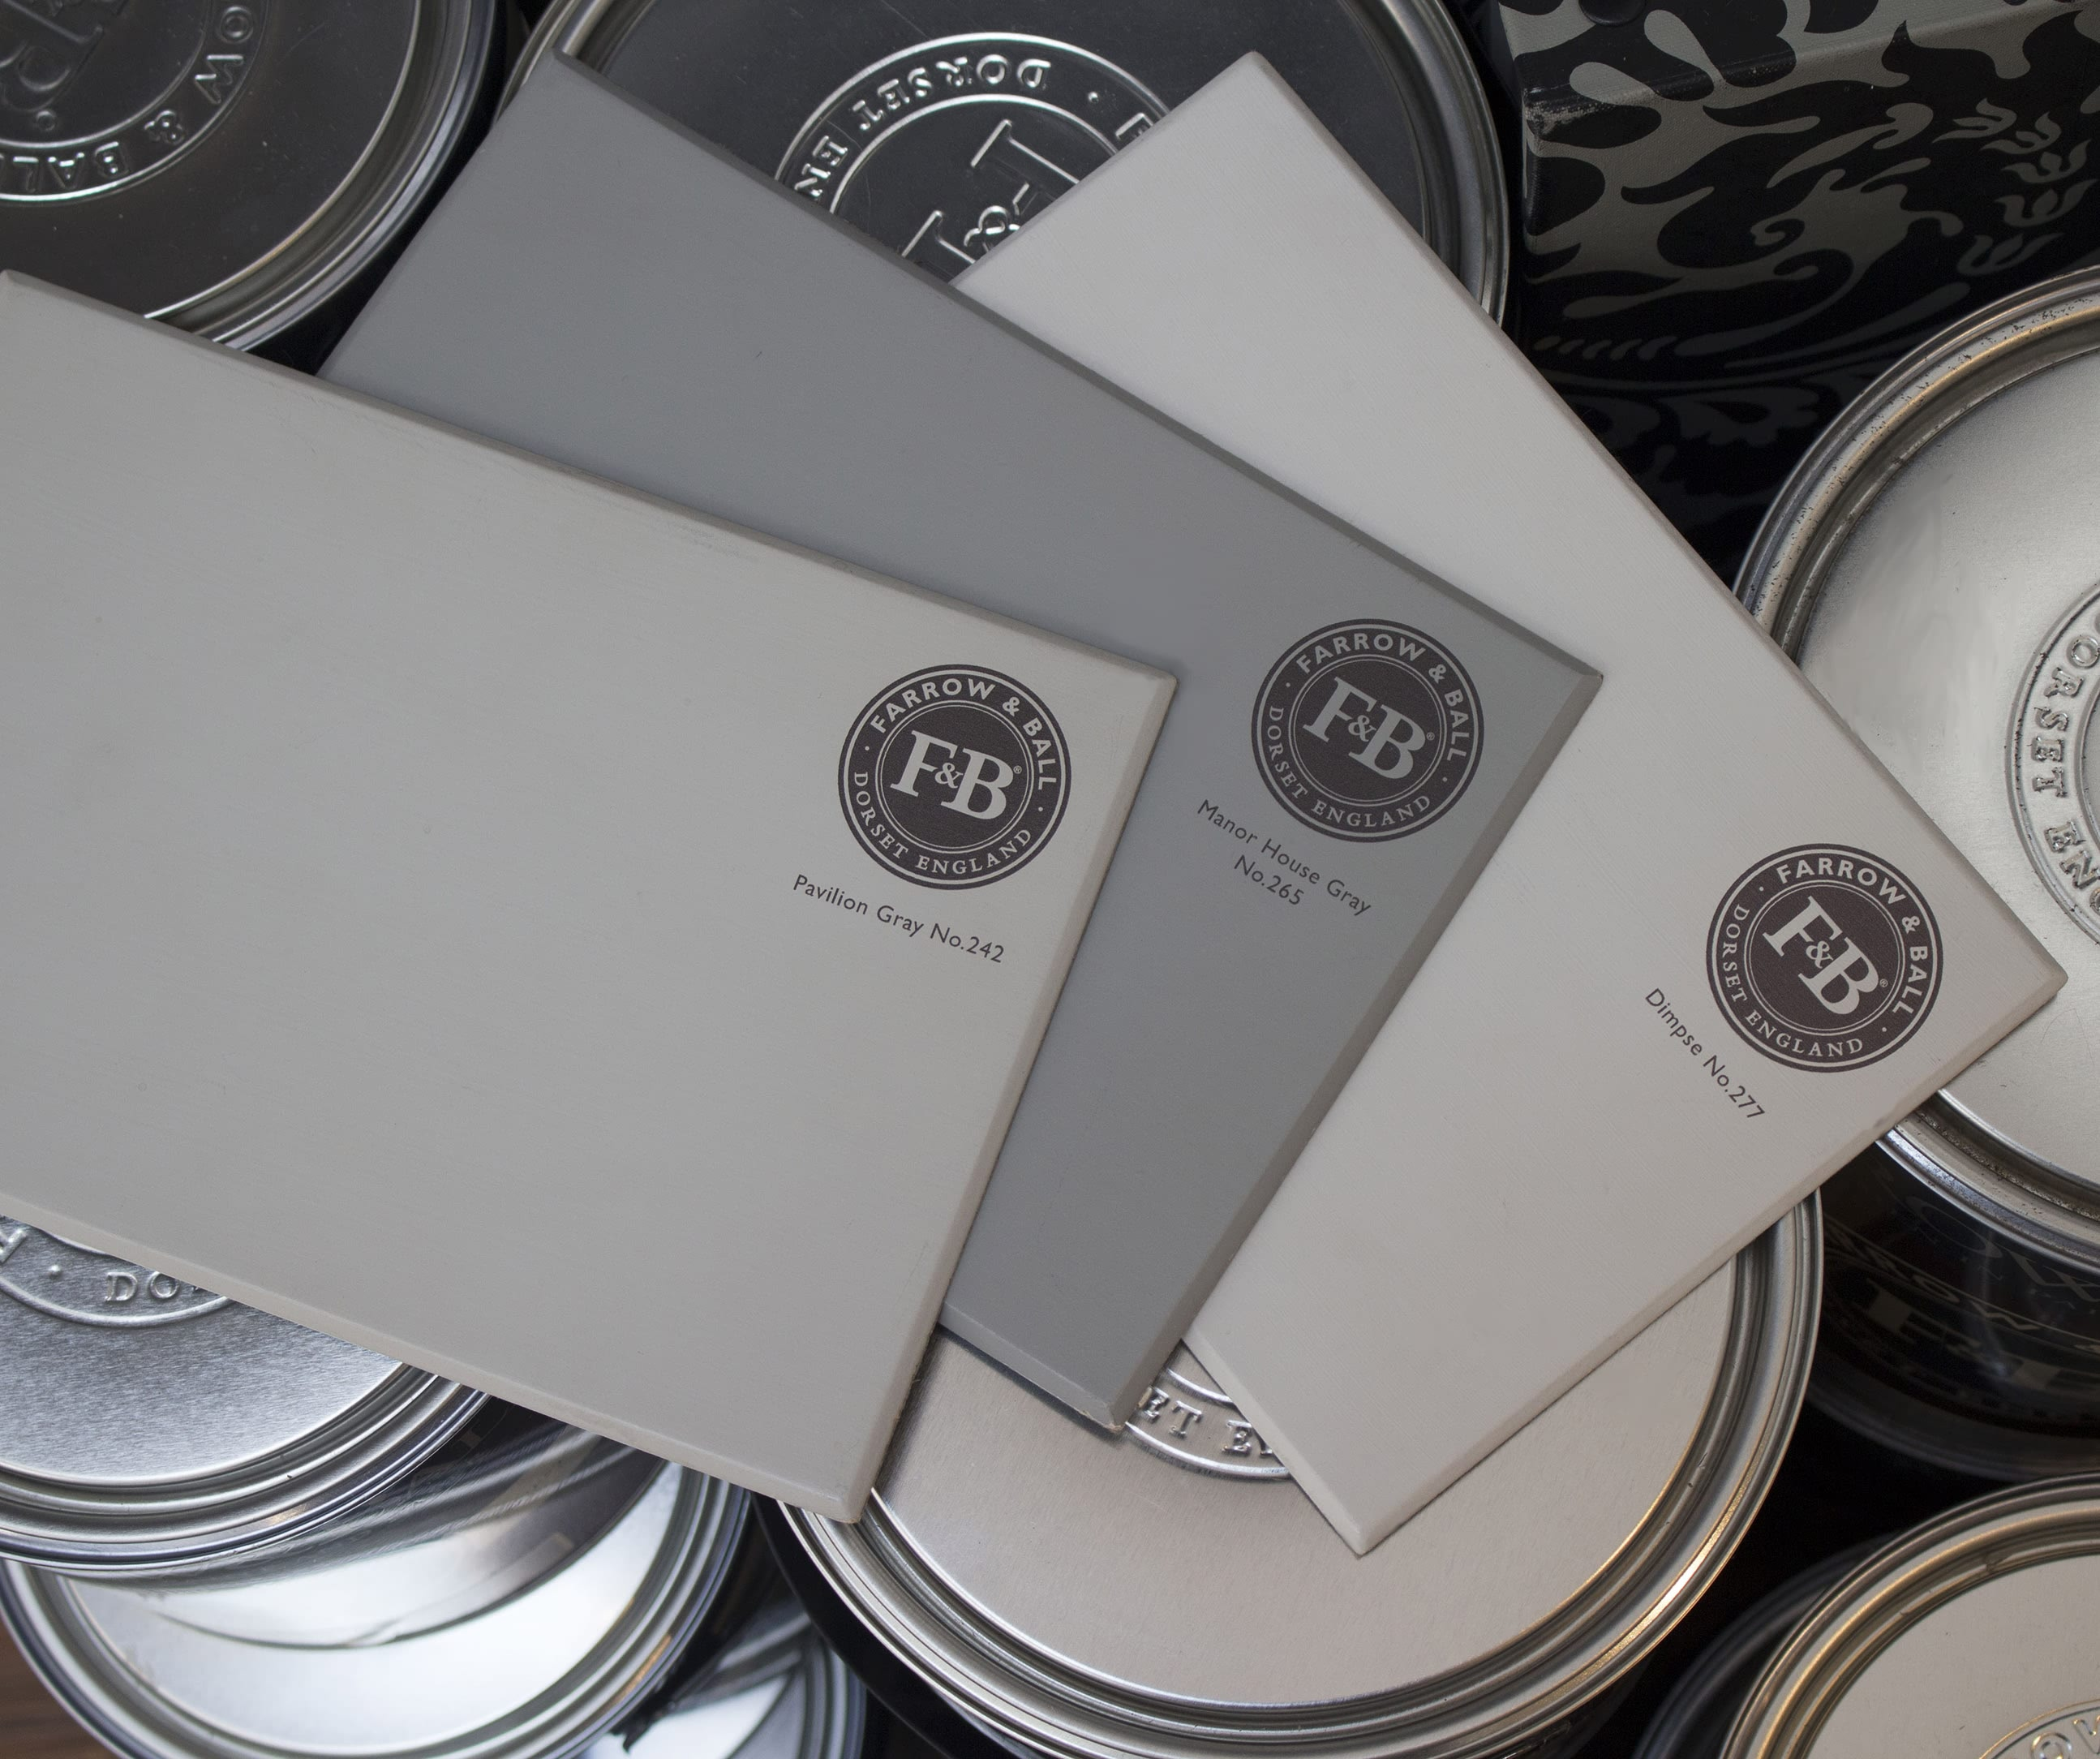 farrow&ball, farrow and ball, paint, decorating, paint brush, manor house gray